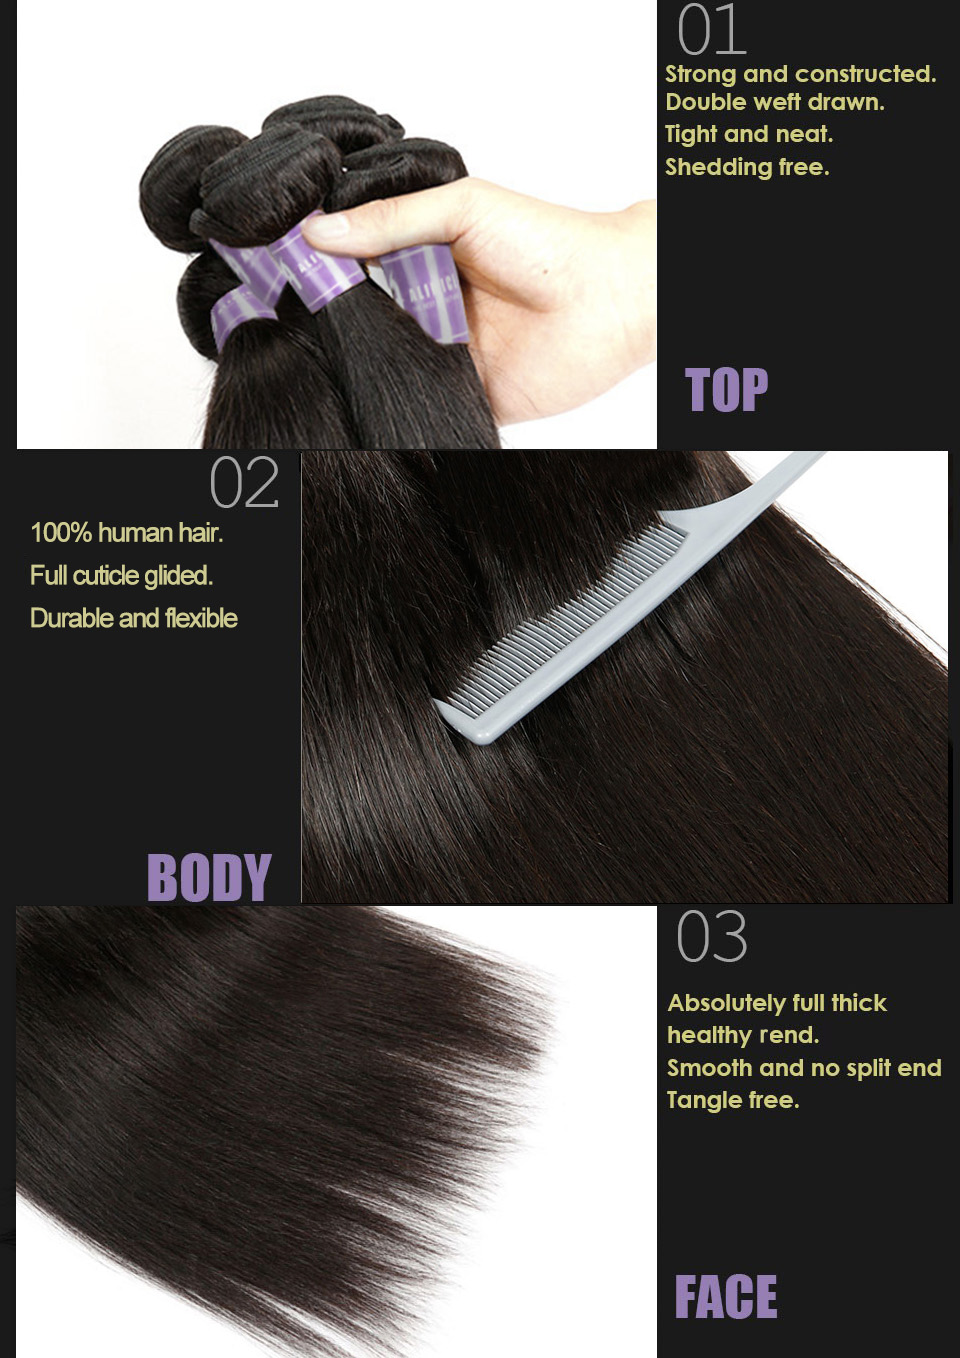 Indian Straight Hair Bundles Human Hair Weave Bundles Non-Remy Hair Extensions Alimice Hair Weaving Double Weft Natural Color (10)